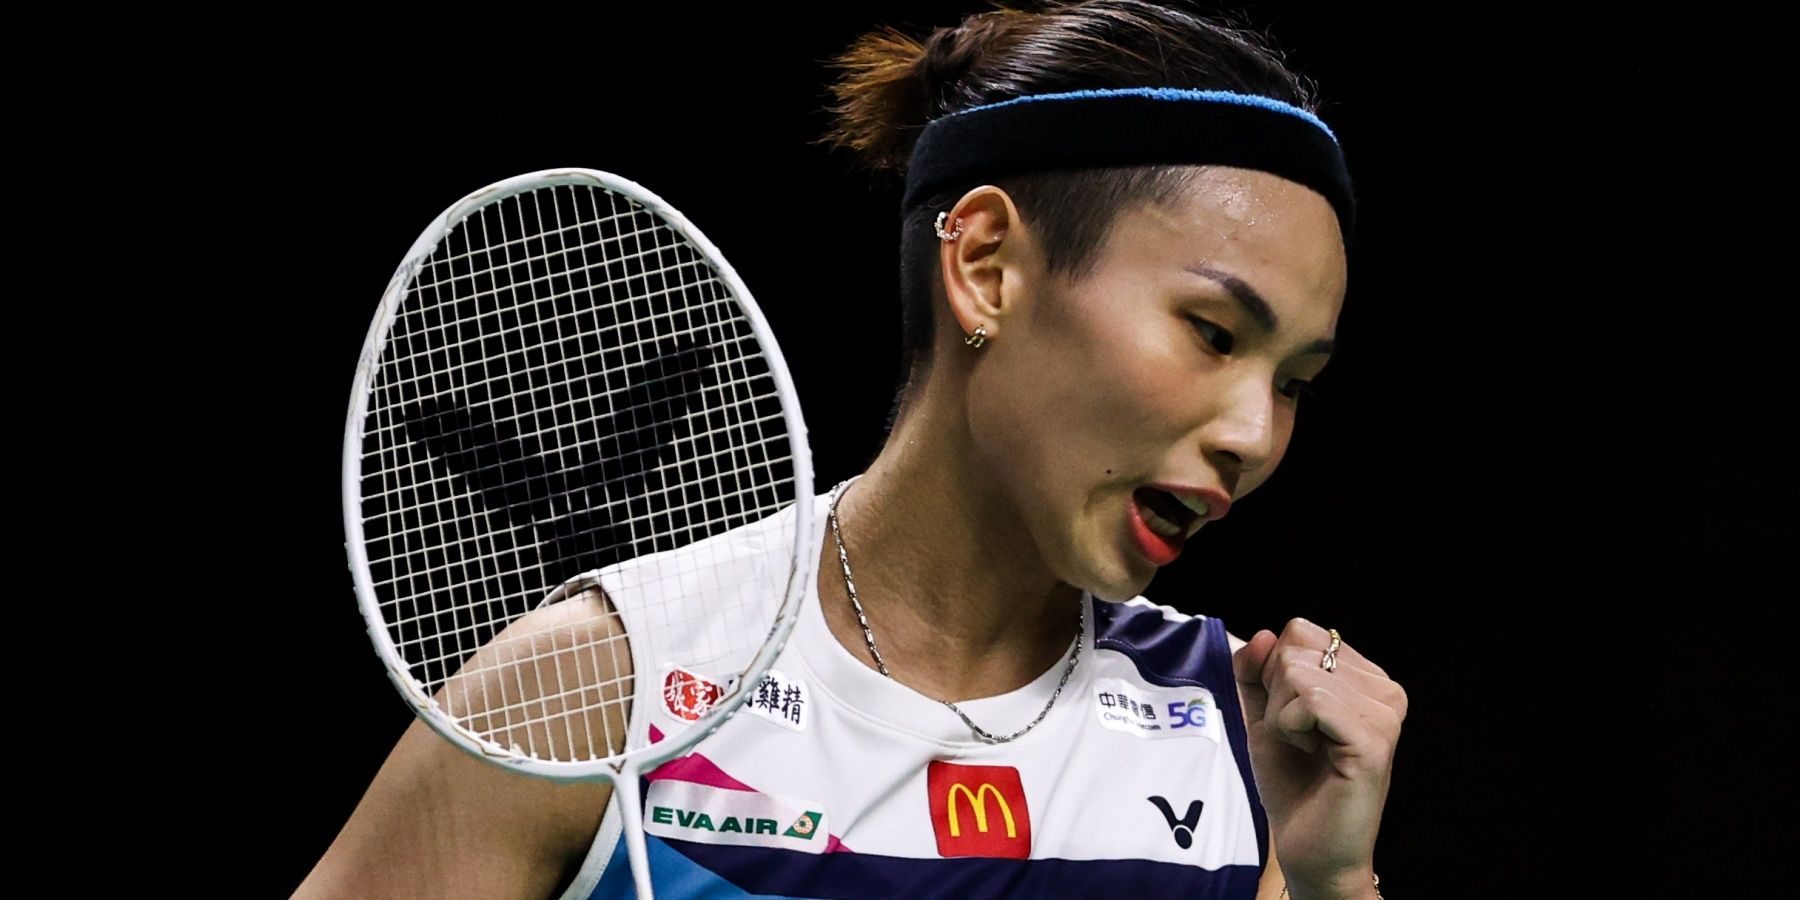 BANGKOK, THAILAND - JANUARY 17: Tai Tzu Ying of Chinese Taipei reacts in the Women's Single final match against Carolina Marin of Spain on day six of the Yonex Thailand Open on January 17, 2021 in Bangkok, Thailand.  (Photo by Shi Tang/Getty Images)